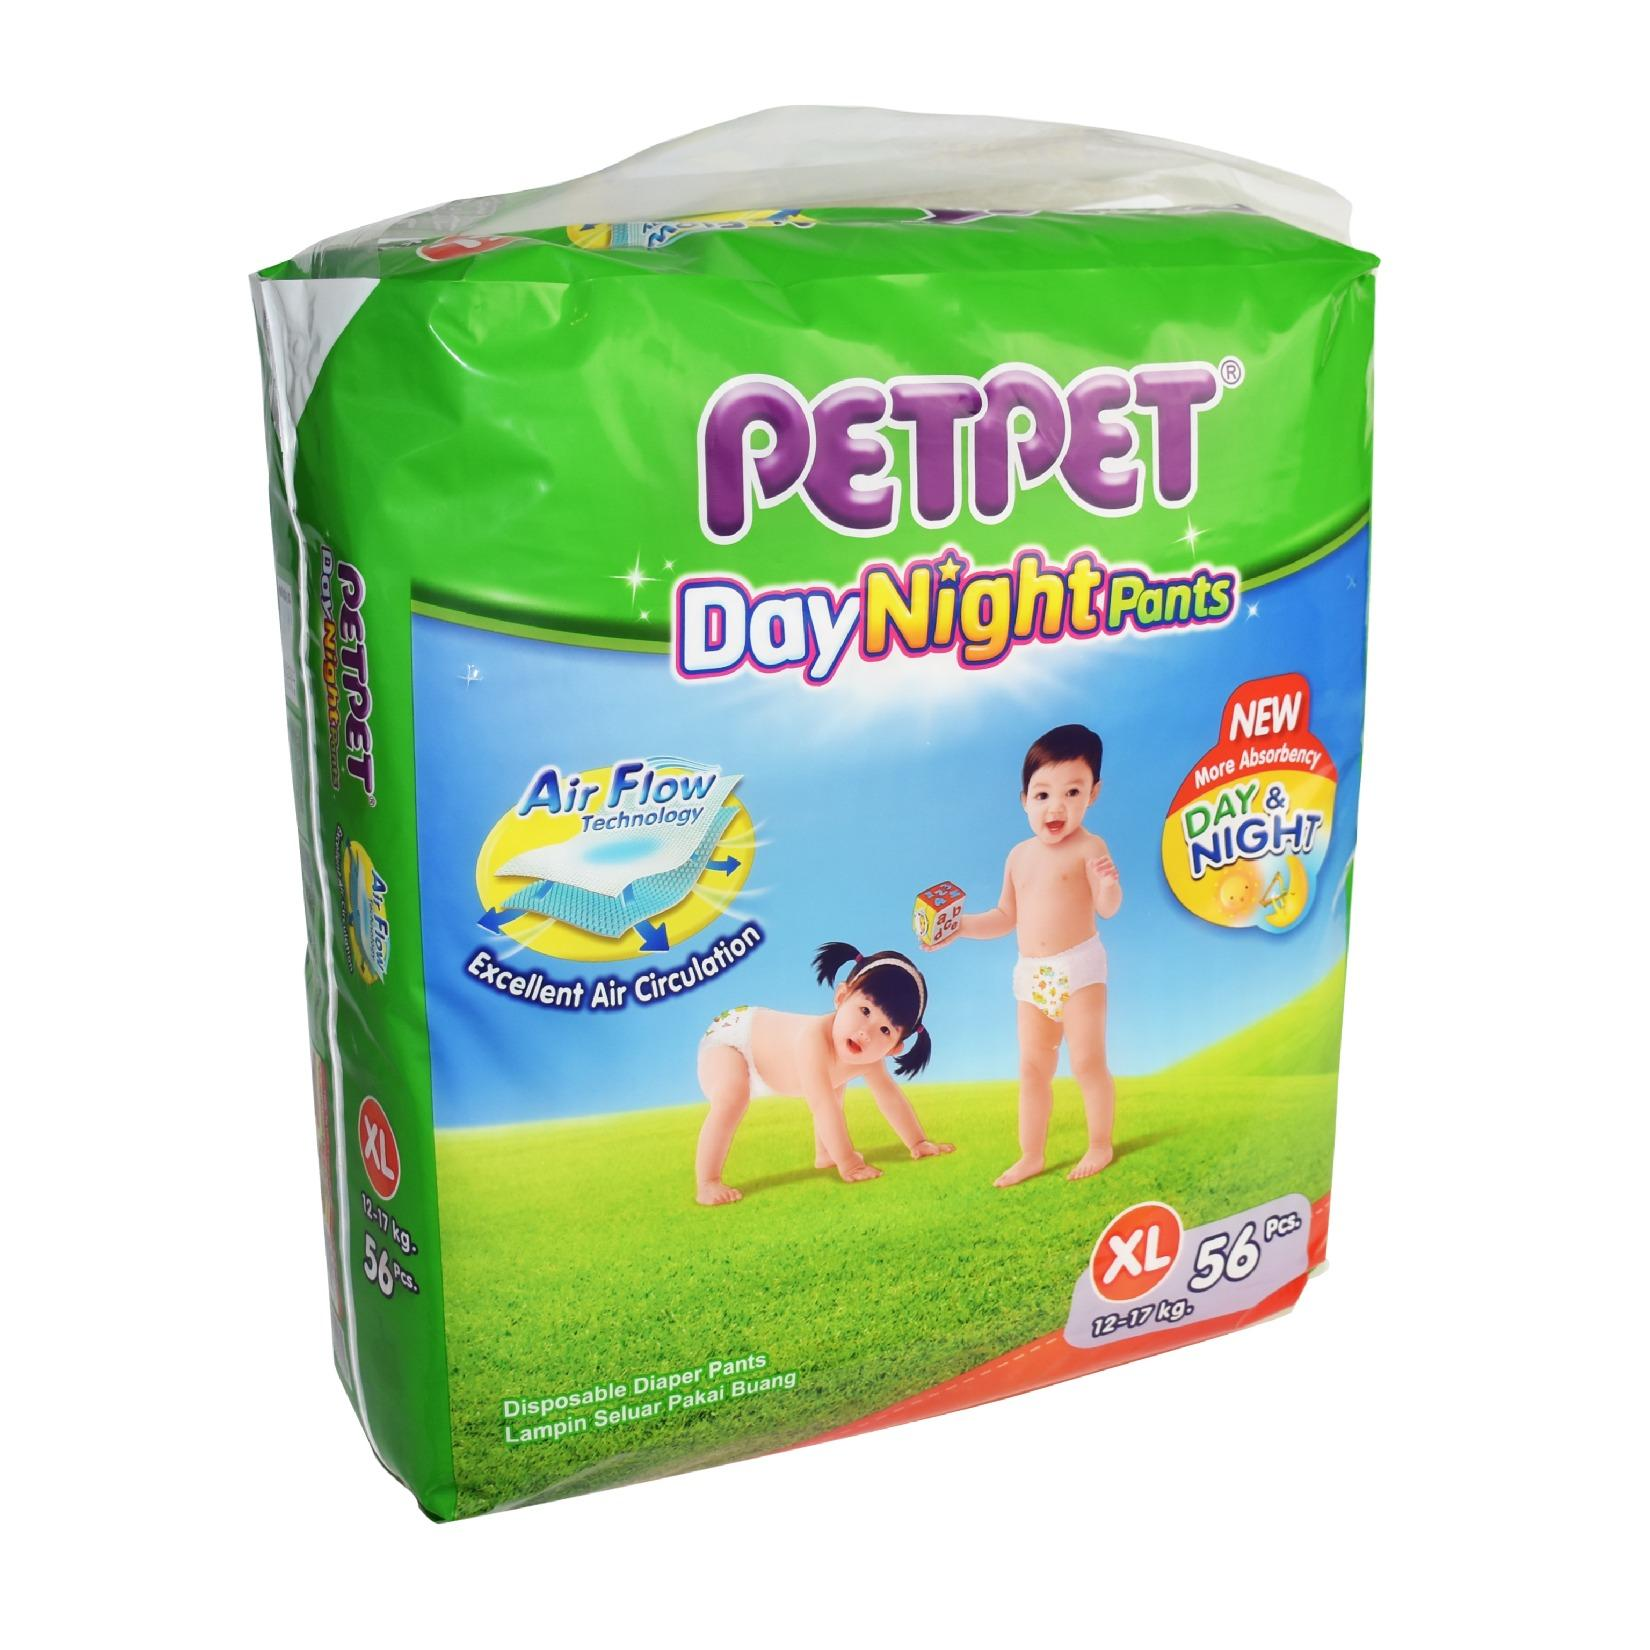 Petpet DayNight Pants Mega Pack XL56 x 3 Packs